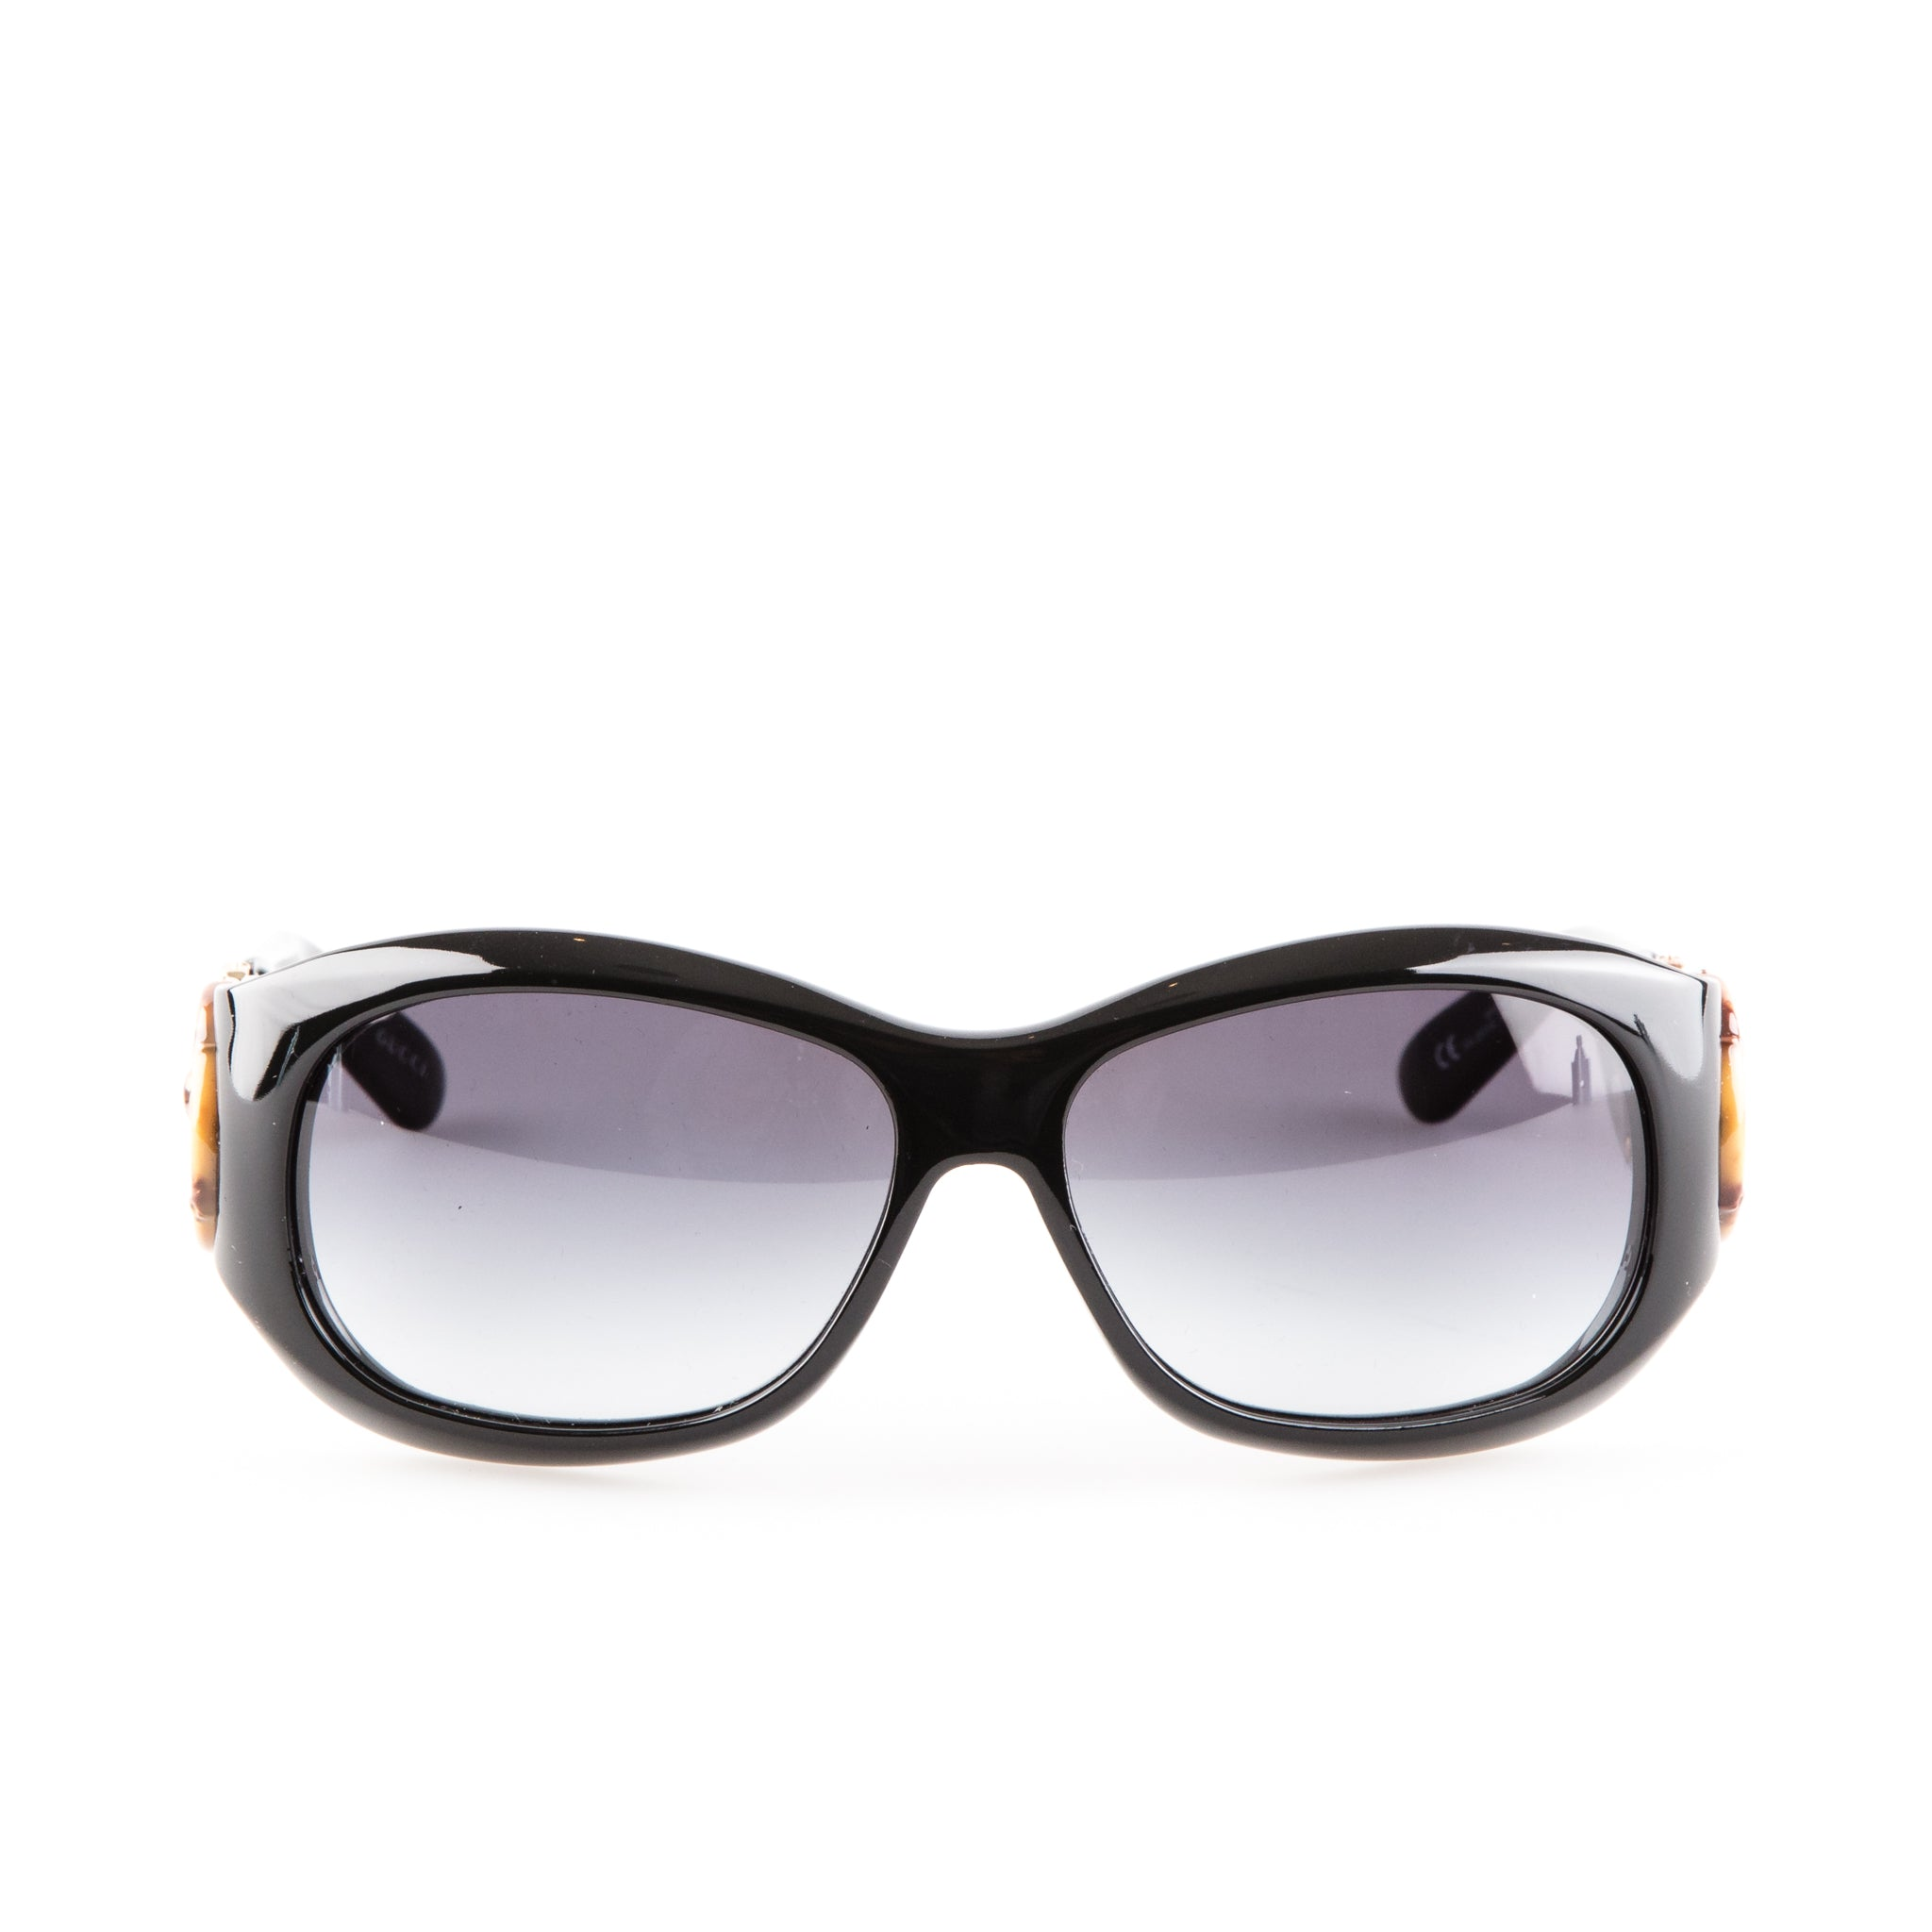 2fcaf3a76 Gucci 'GG 2970/S' Square Framed Sunglasses with Bamboo Details ...